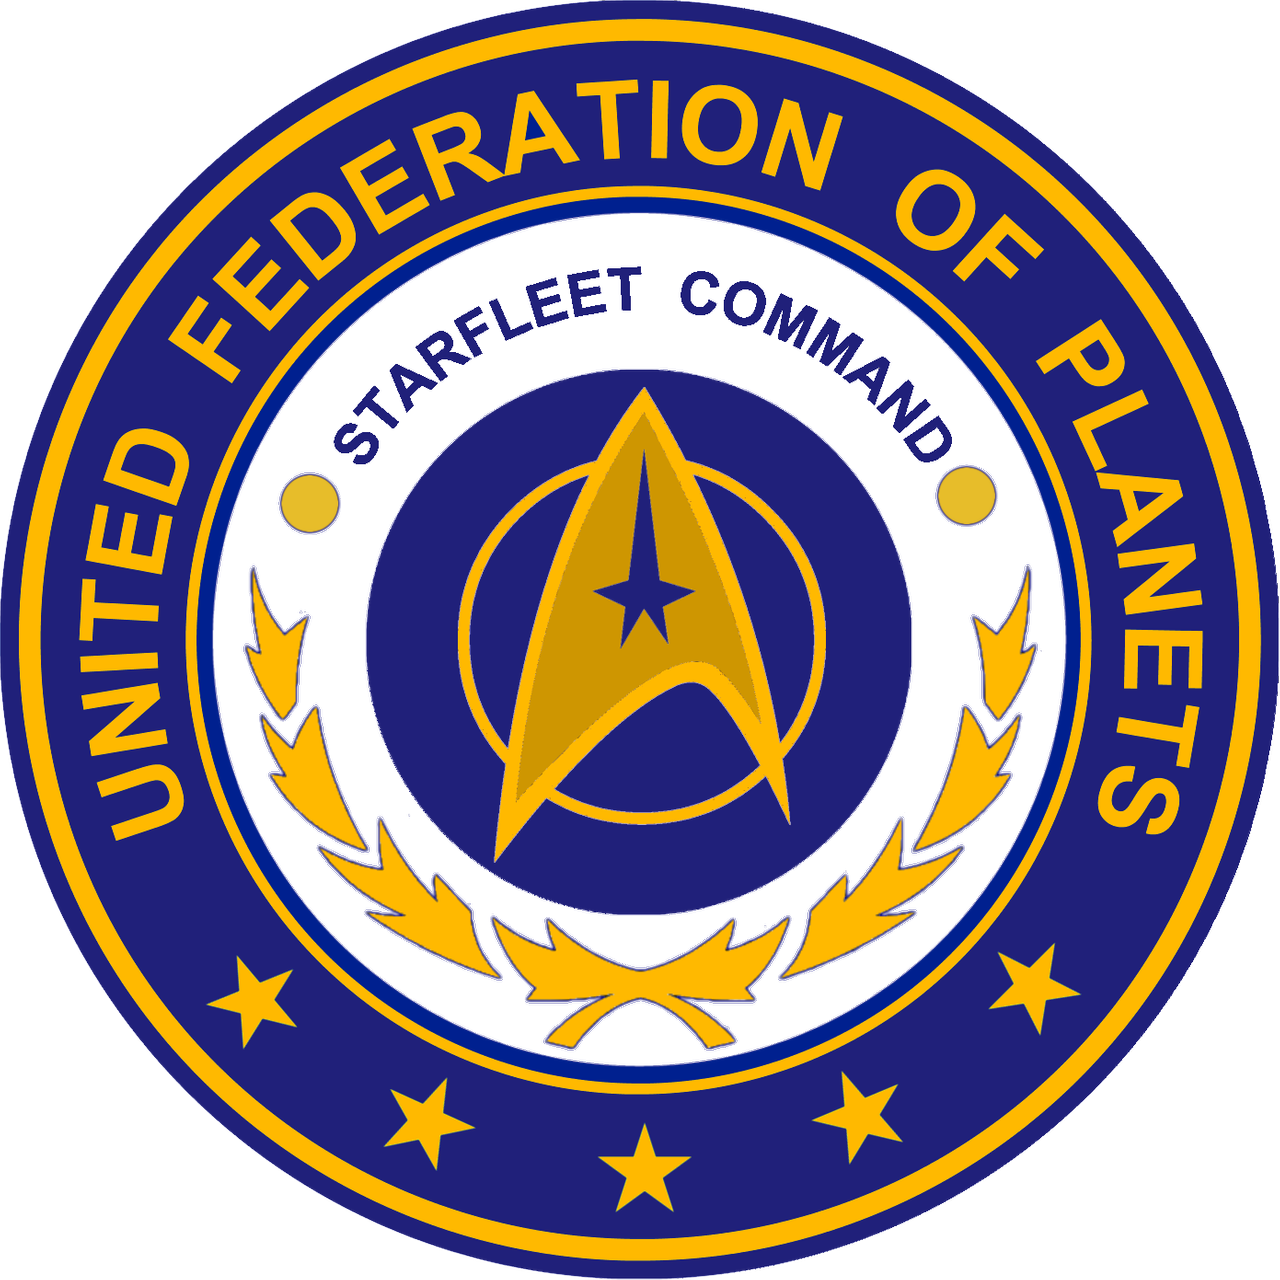 Starfleet Command Insignia The Motion Picture By Viperaviator On Deviantart Star Trek Symbol Fandom Star Trek Star Trek Starships